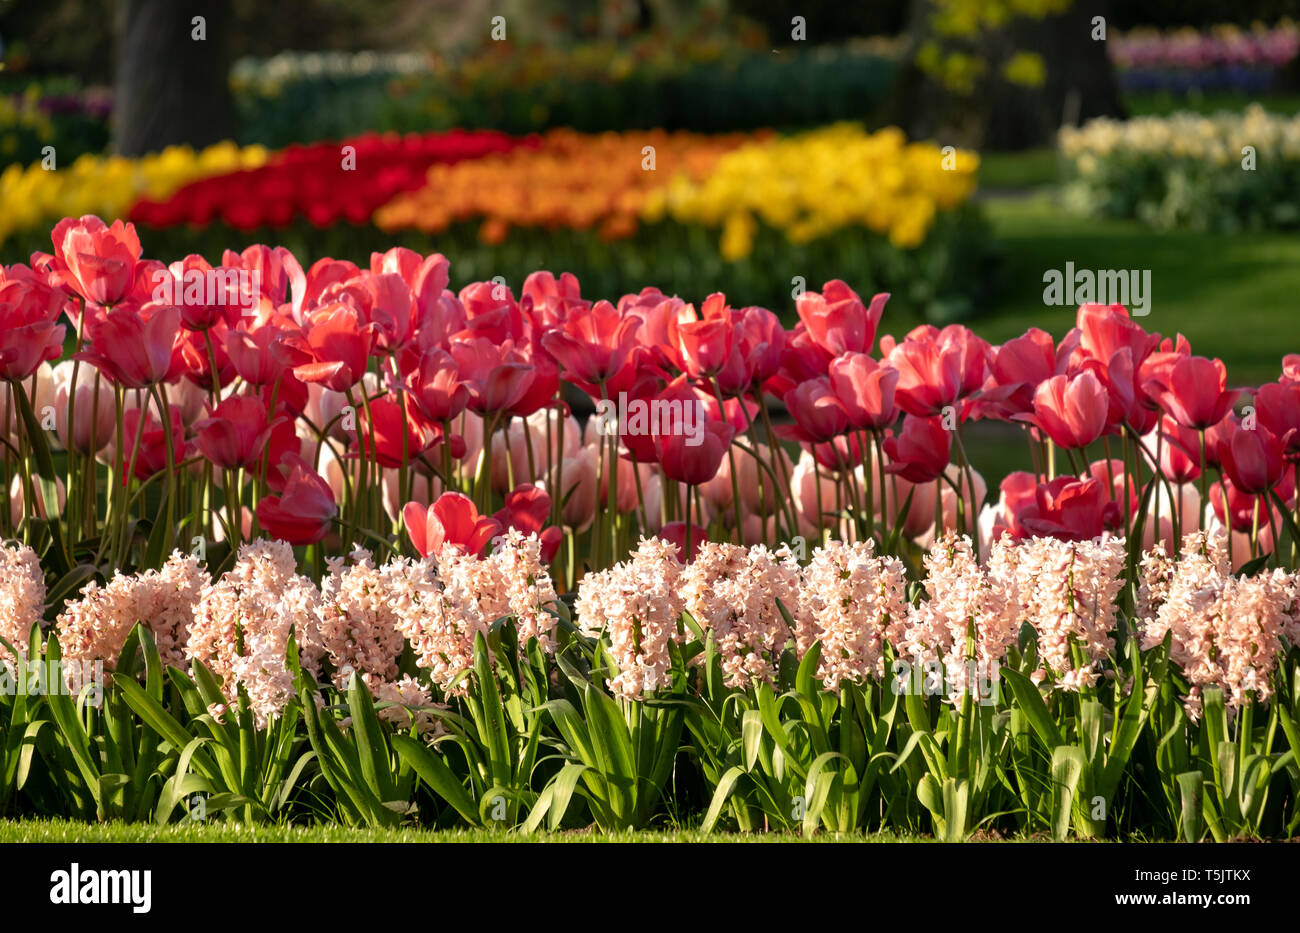 Tulips in vibrant colours on display at Keukenhof Gardens, Lisse, South Holland. Lisse is the centre of Holland's floriculture industry. - Stock Image